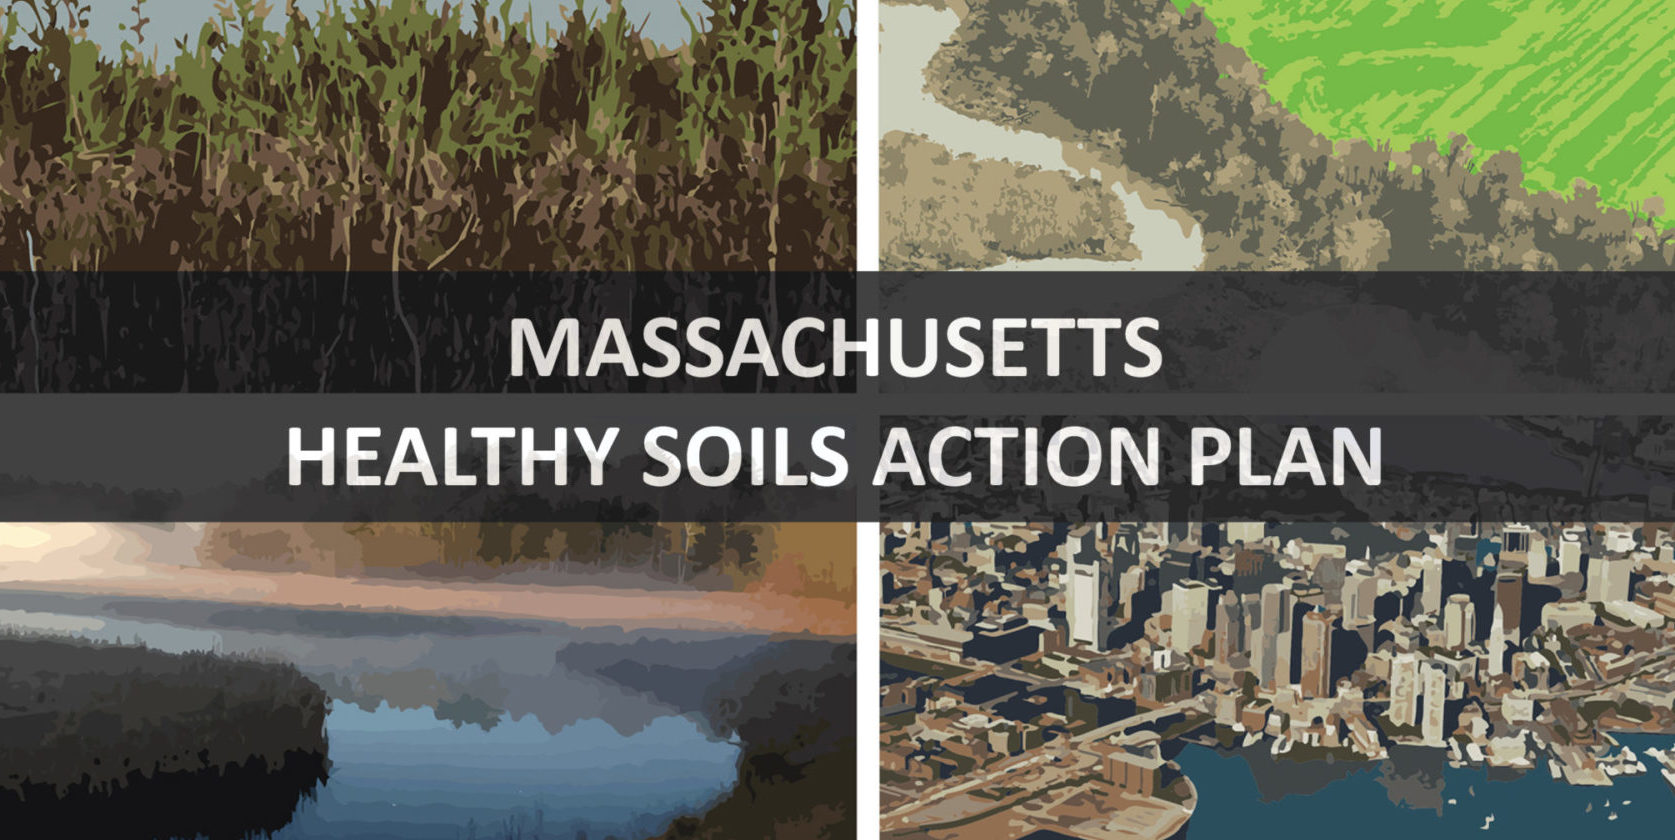 Massachusetts Healthy Soils Action Plan